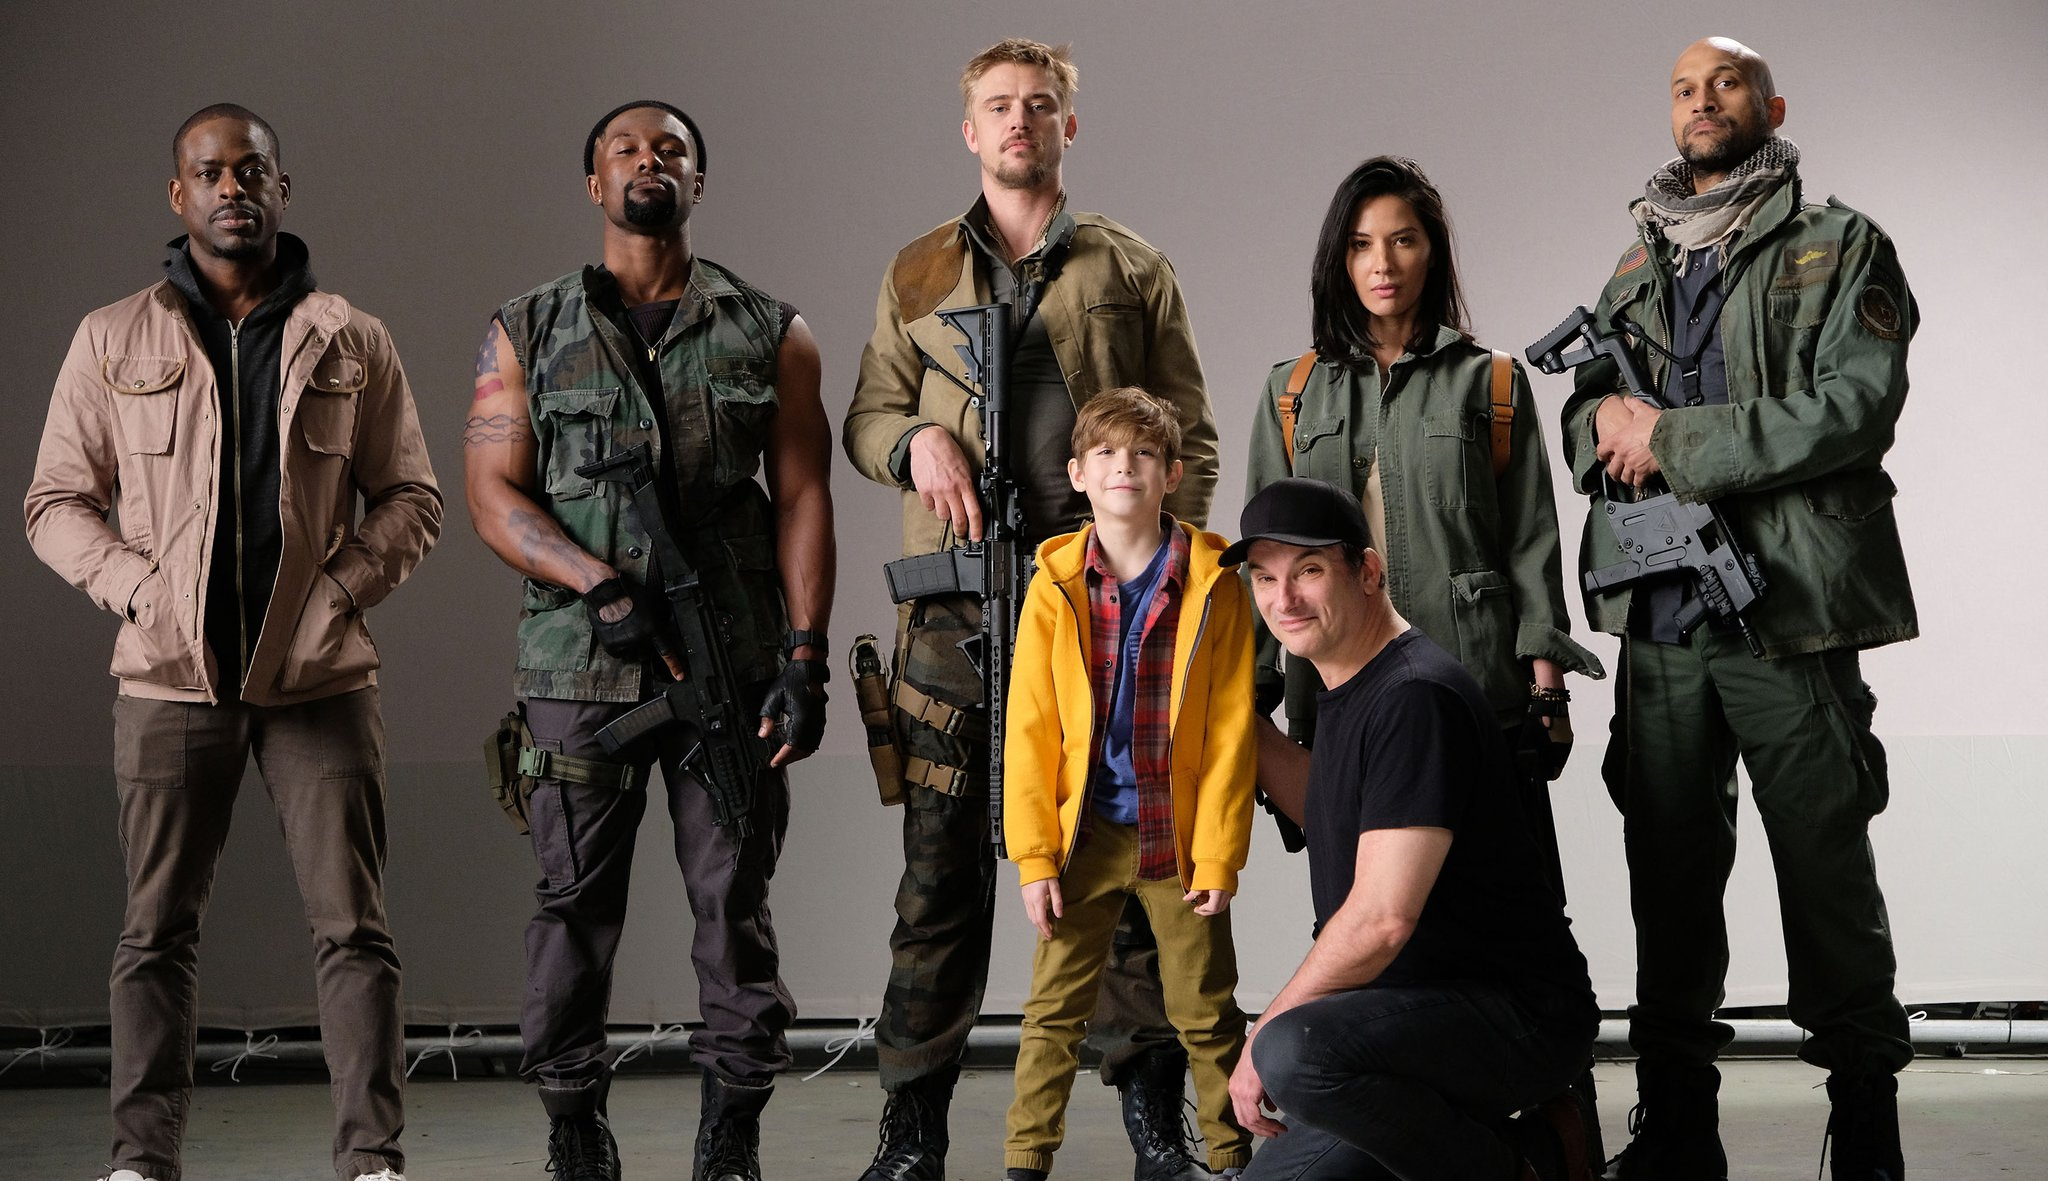 Photo du tournage de The Predator avec le casting au complet